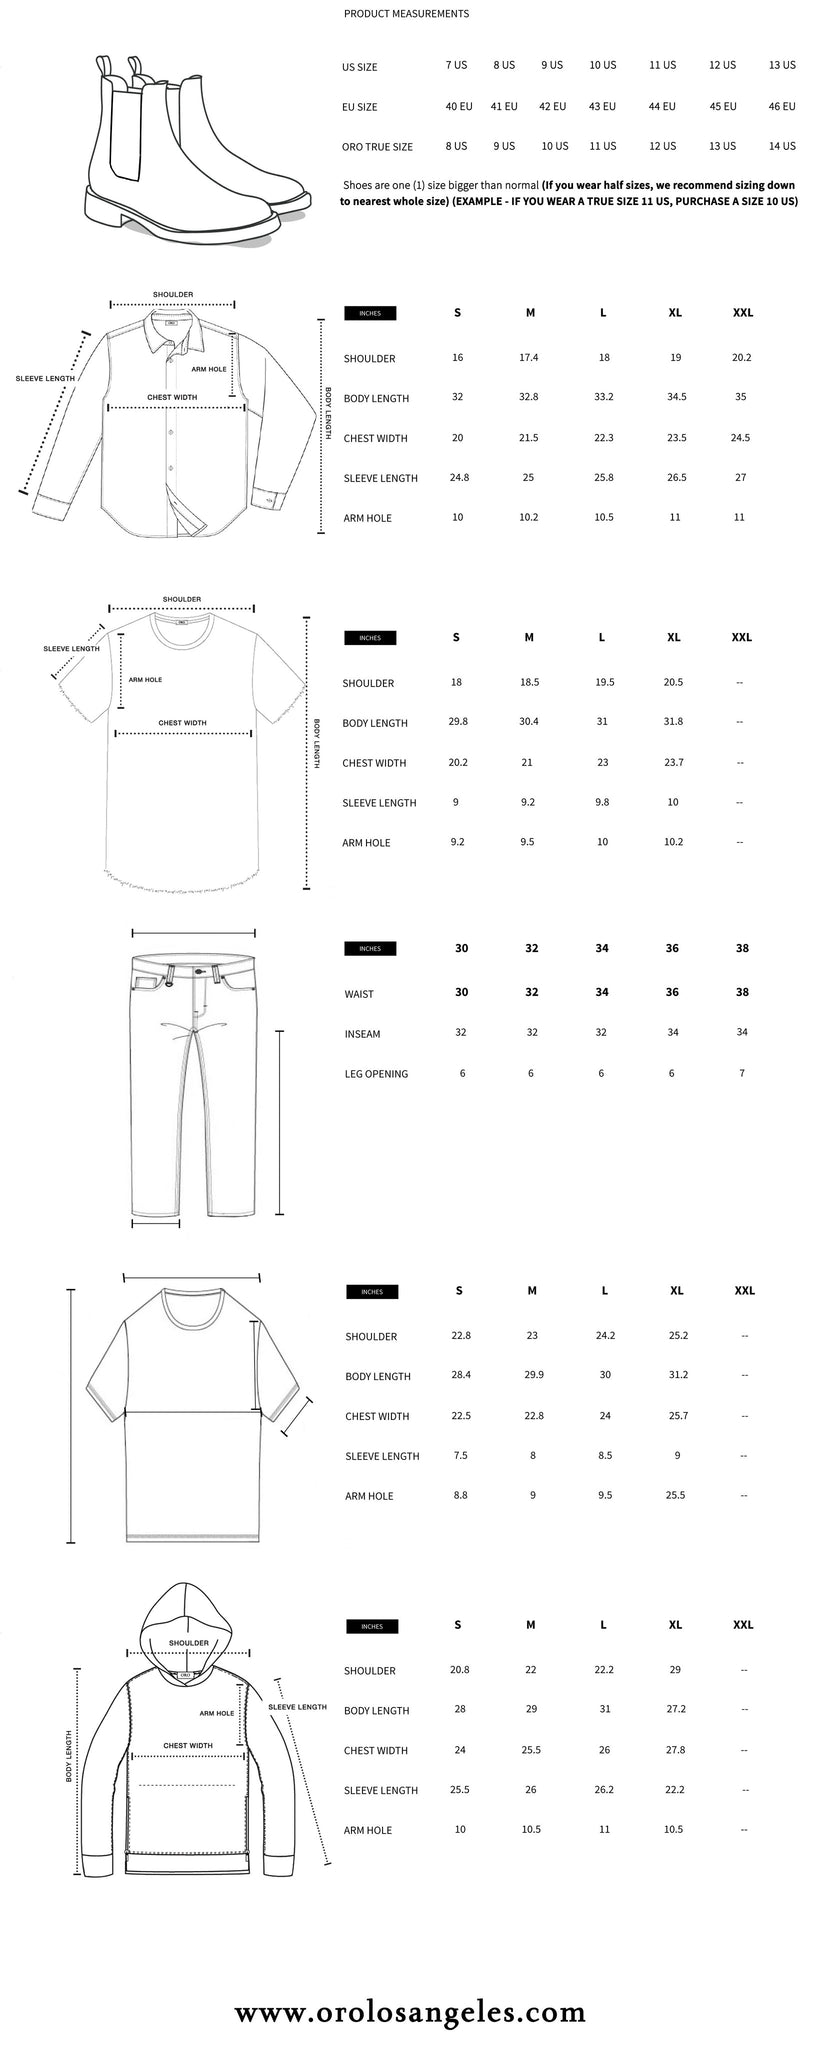 Oro Los Angeles Size Guide.